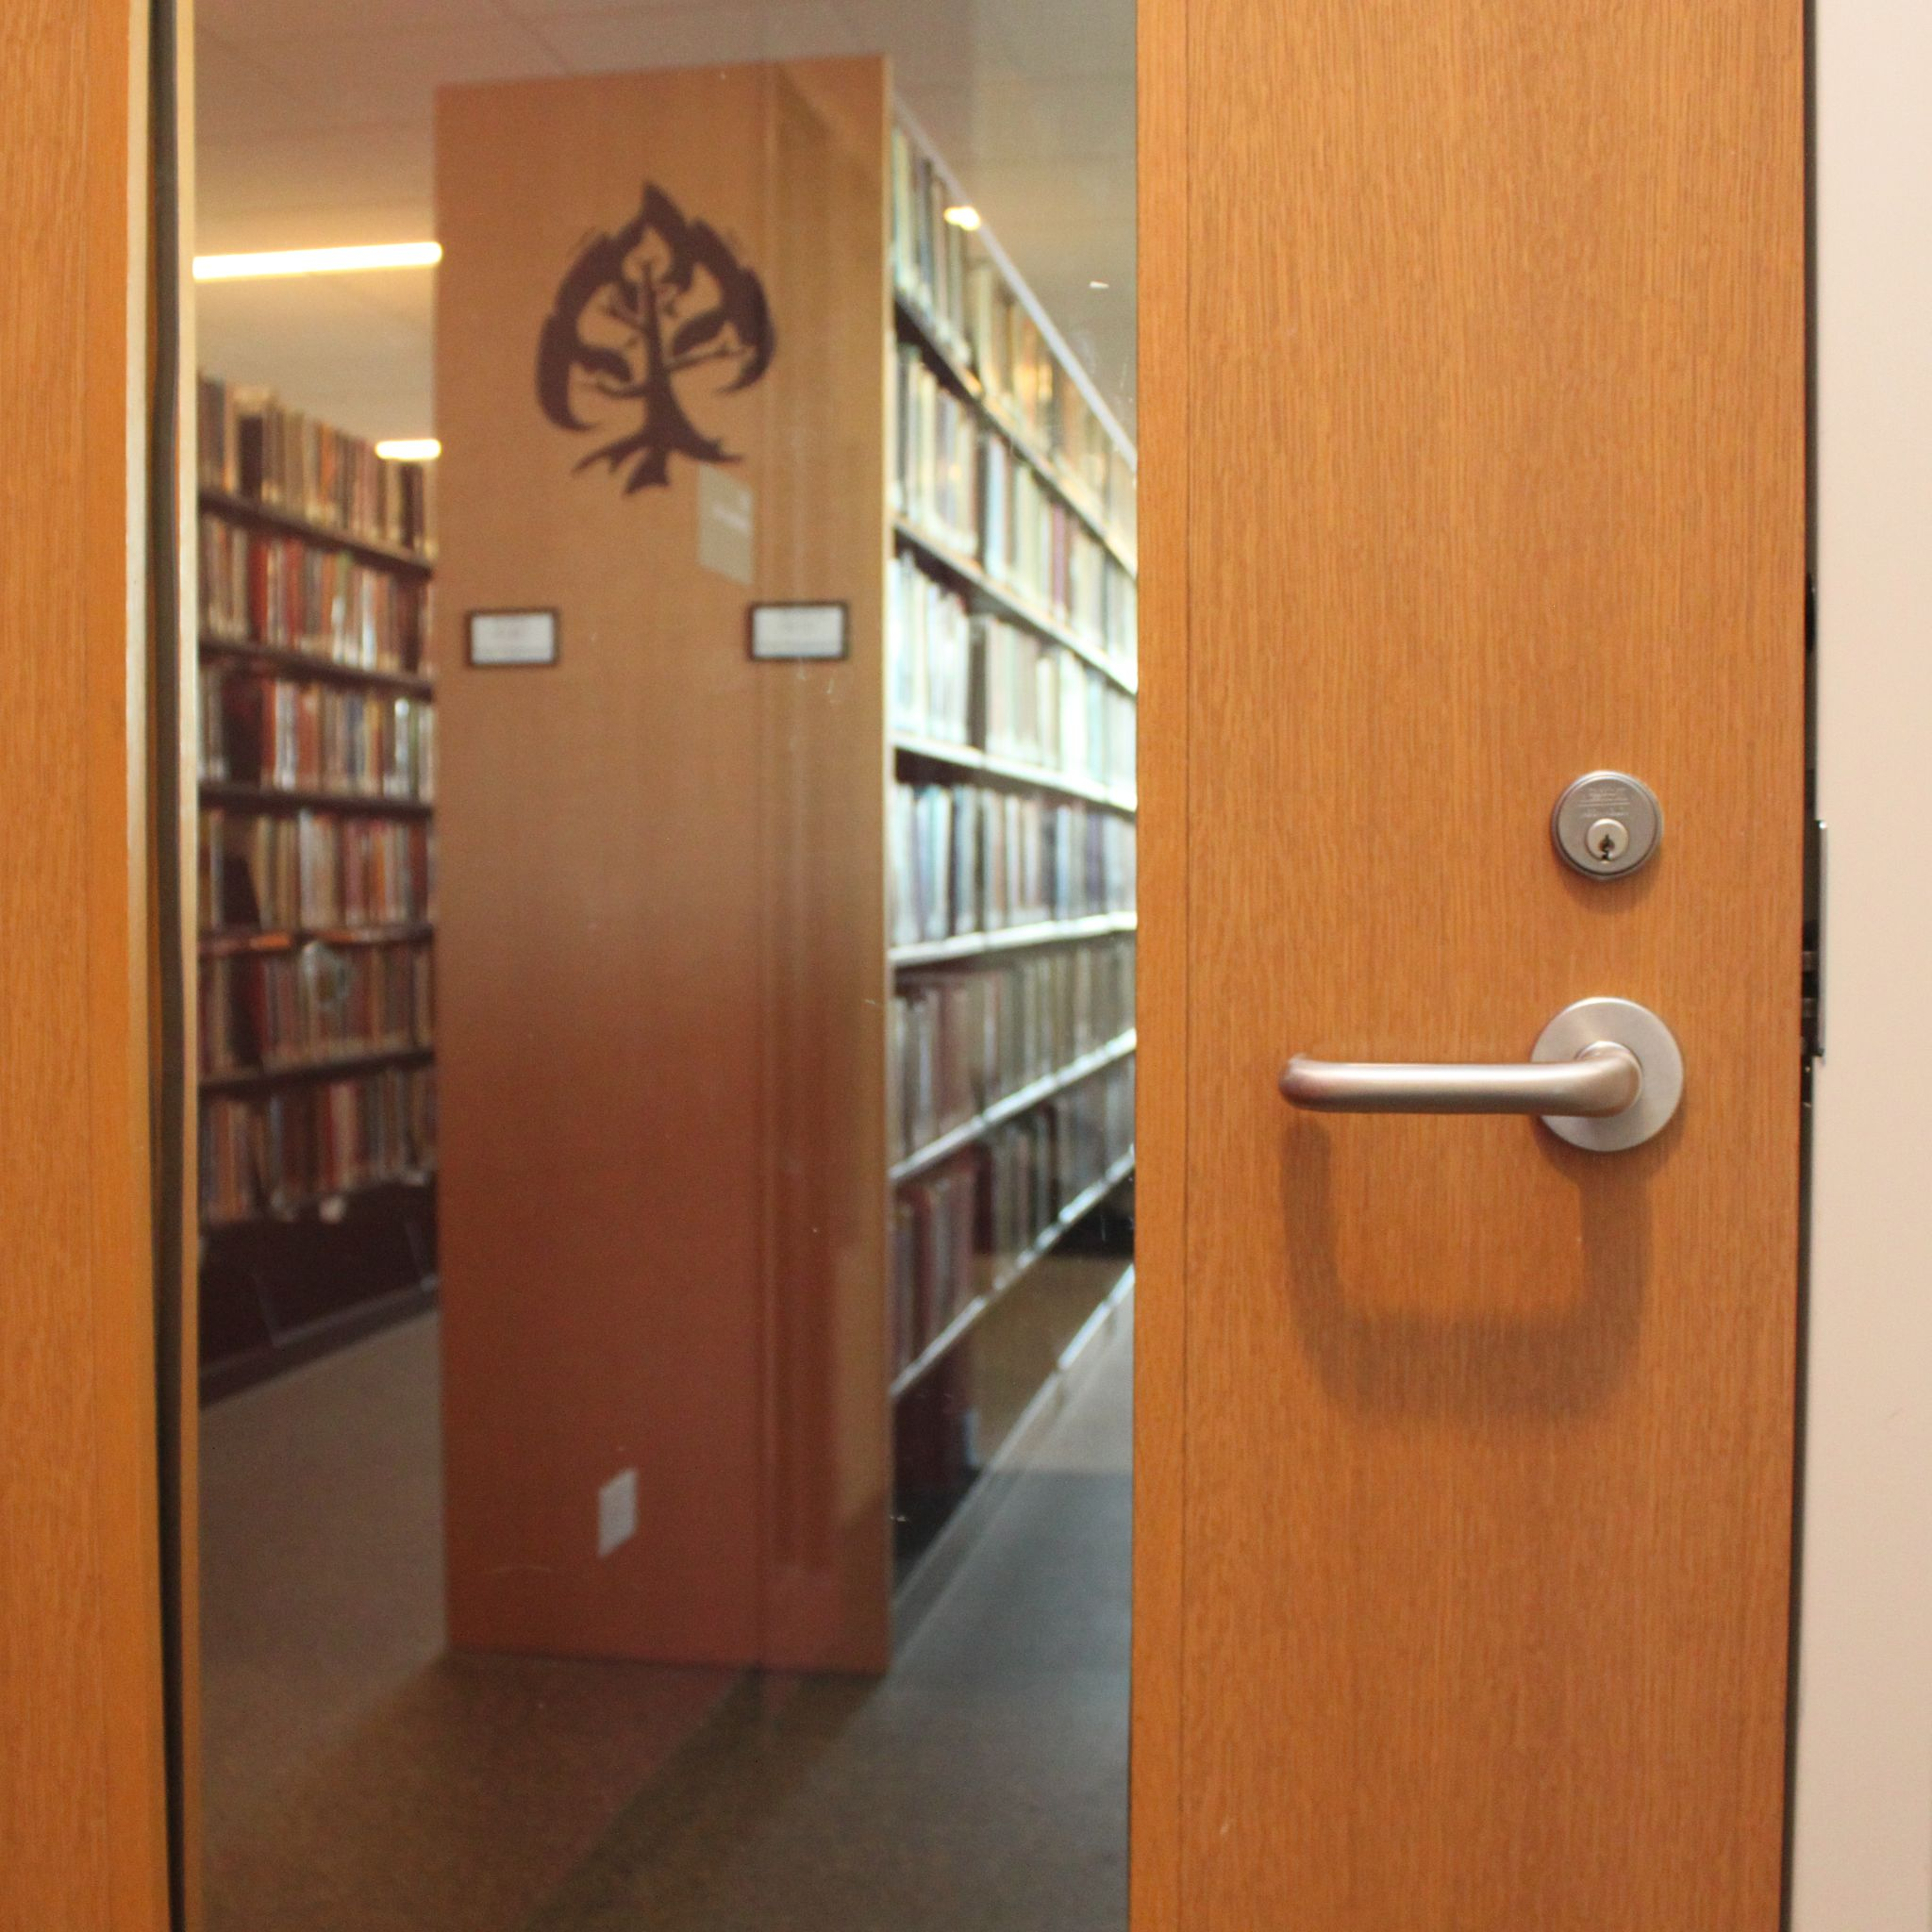 Library seen through glass of interior wooden door.